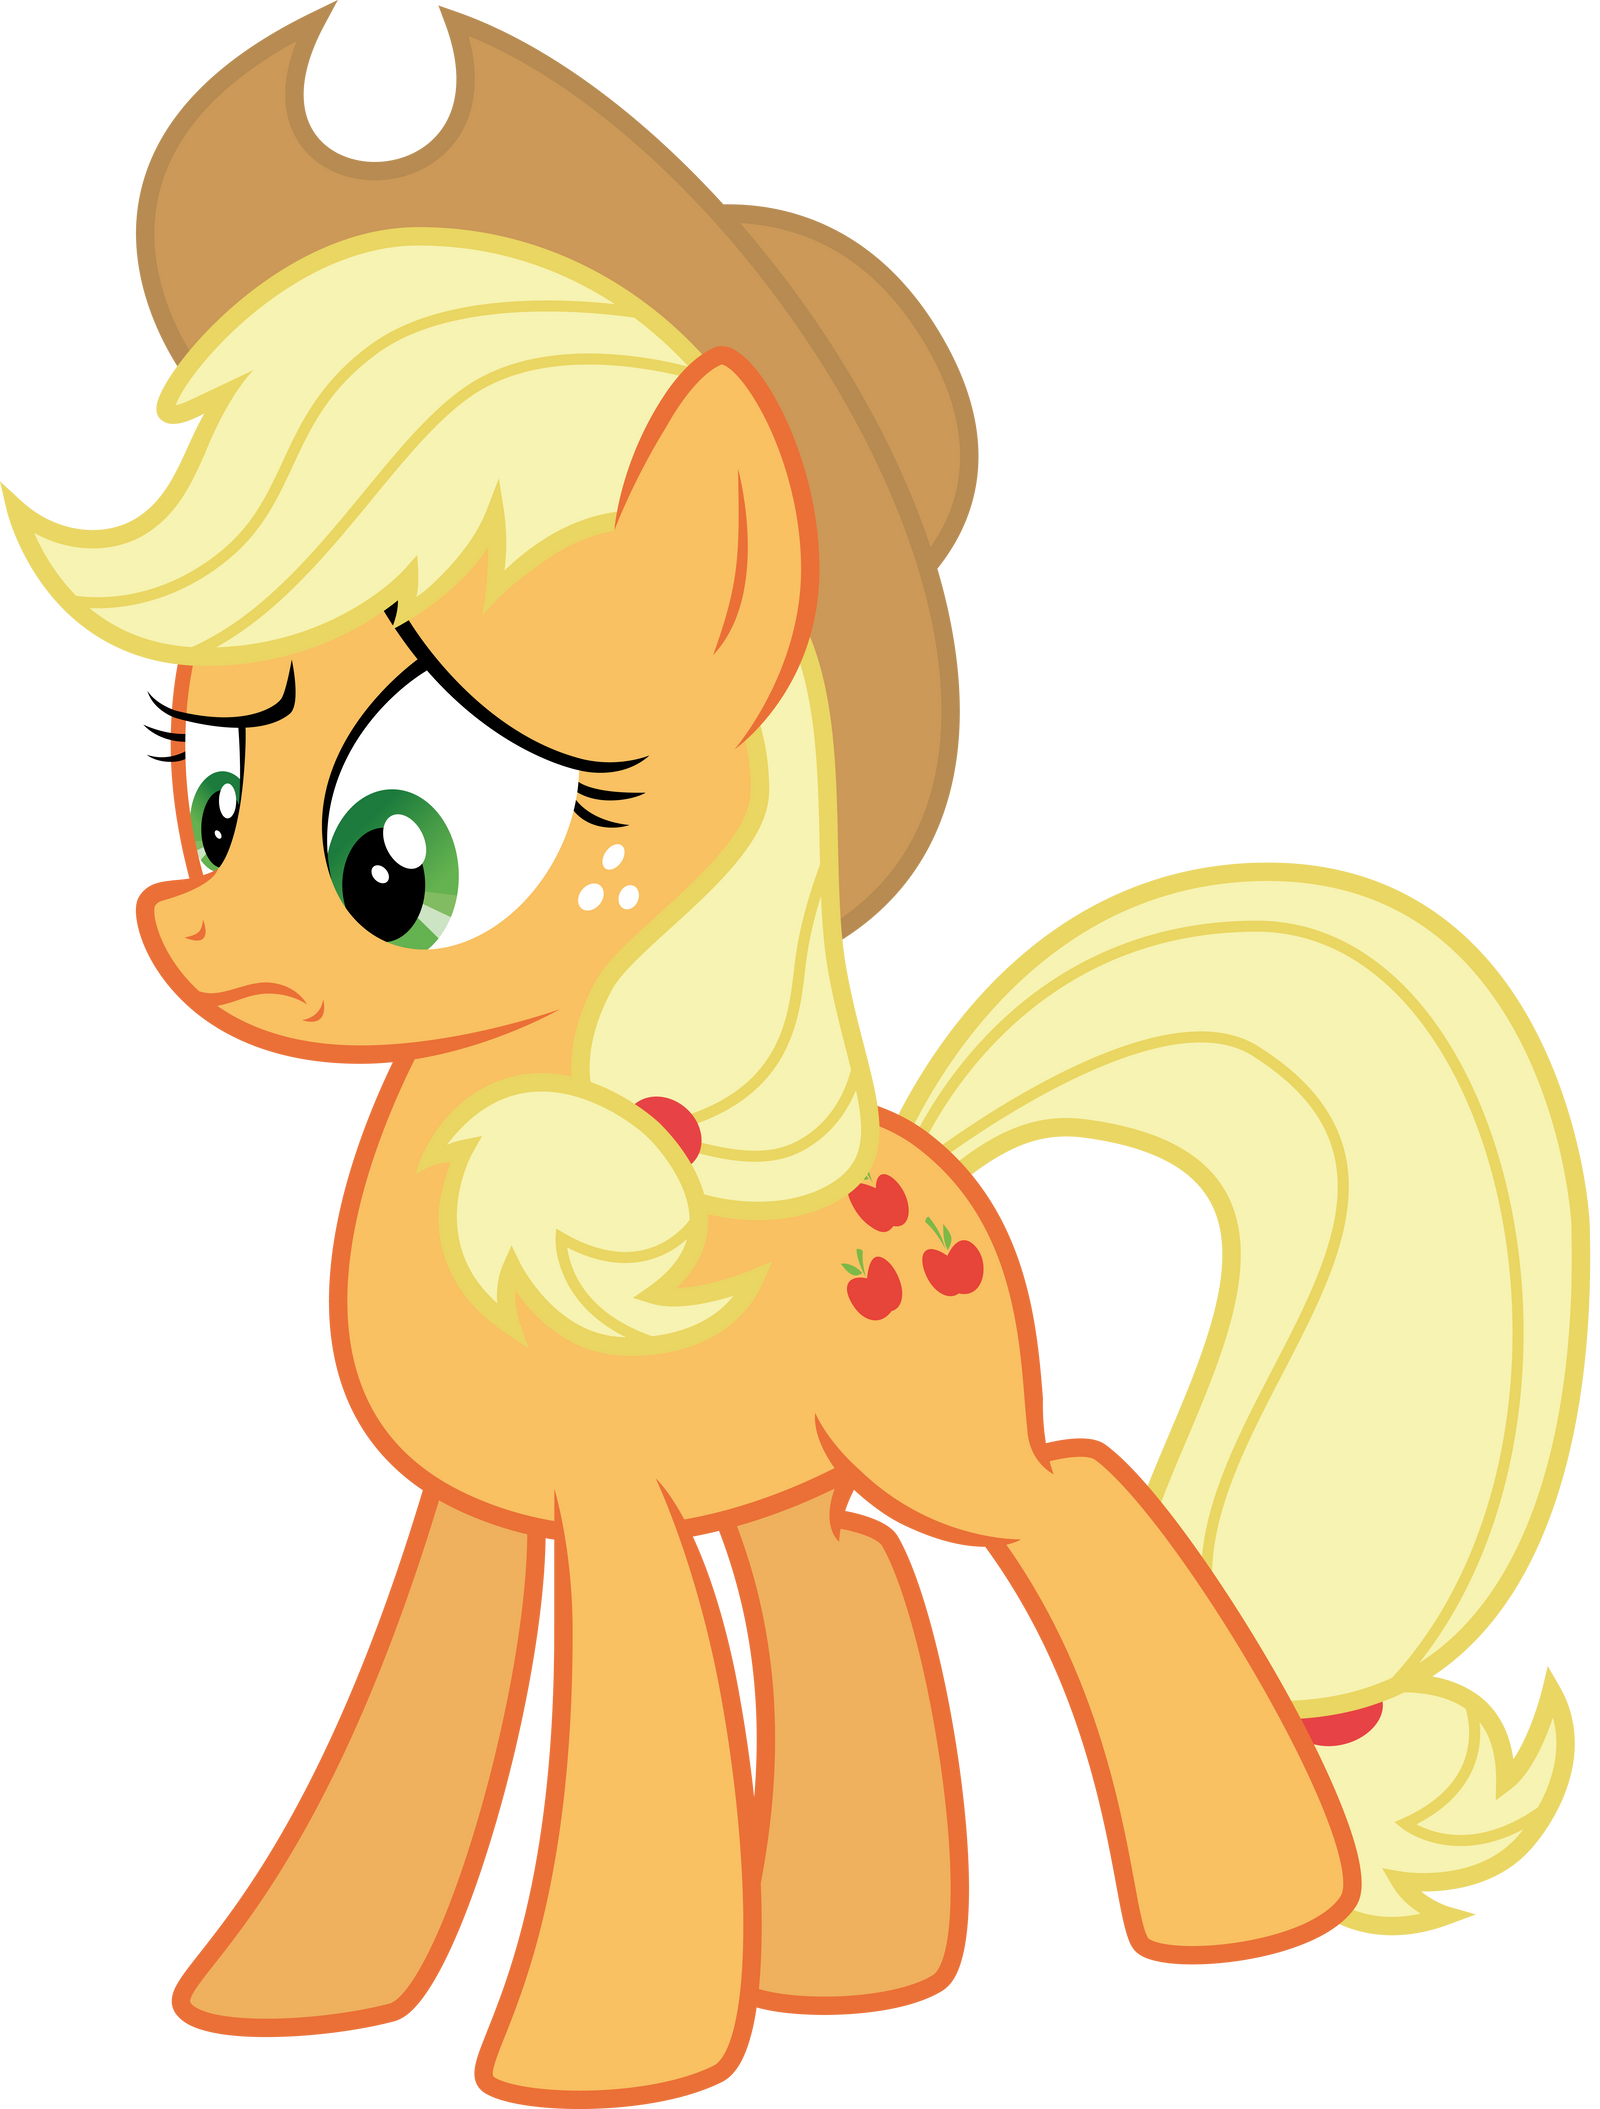 Applejack: 'What the hay?' by thatguy1945.  Applejack - Gasp by BobtheLurker, Jun 2, 2012.